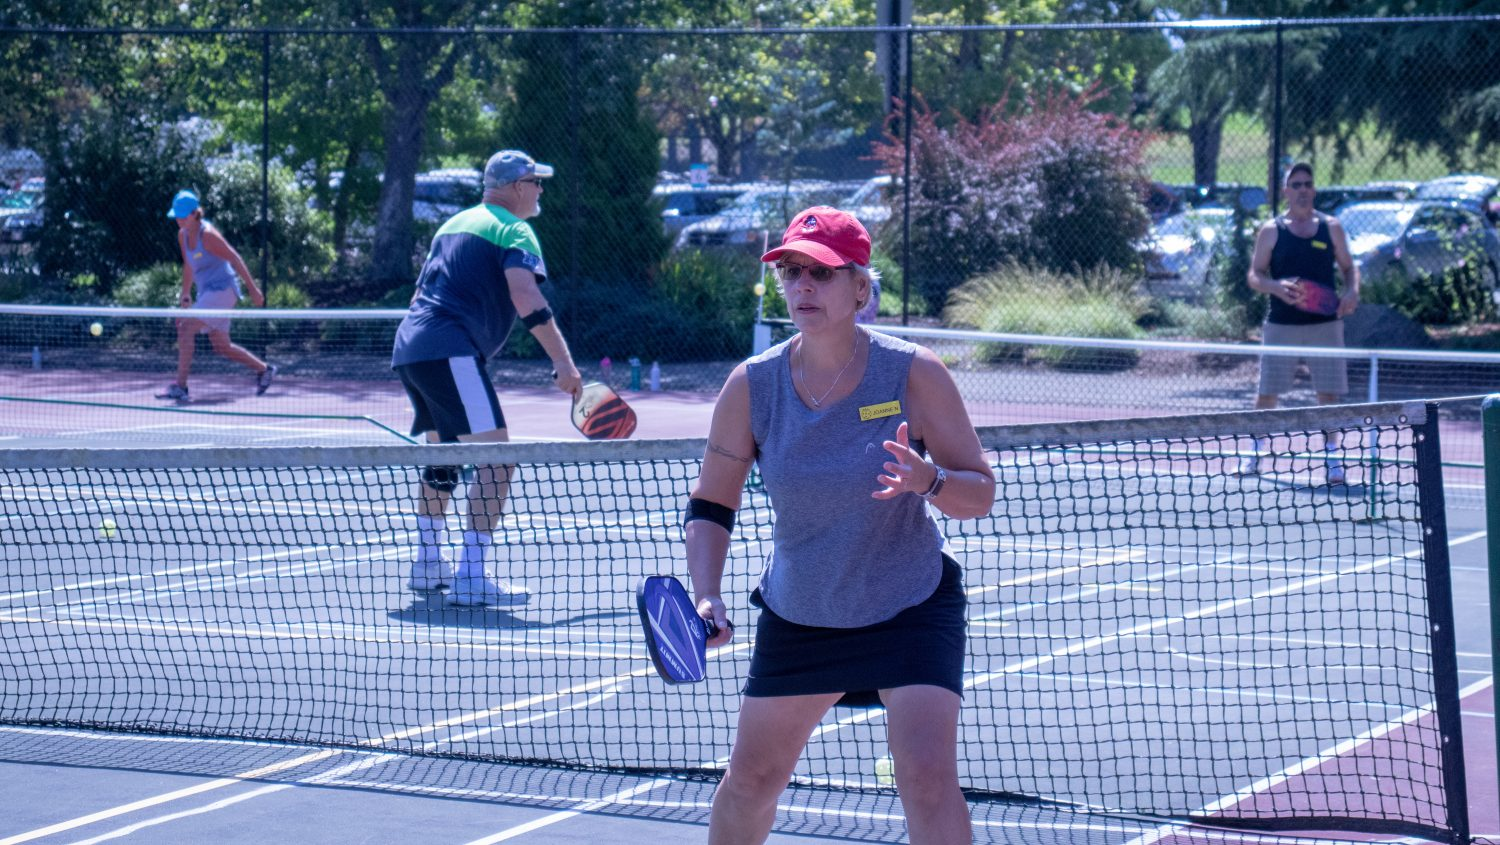 Oceanside Pickleball Club